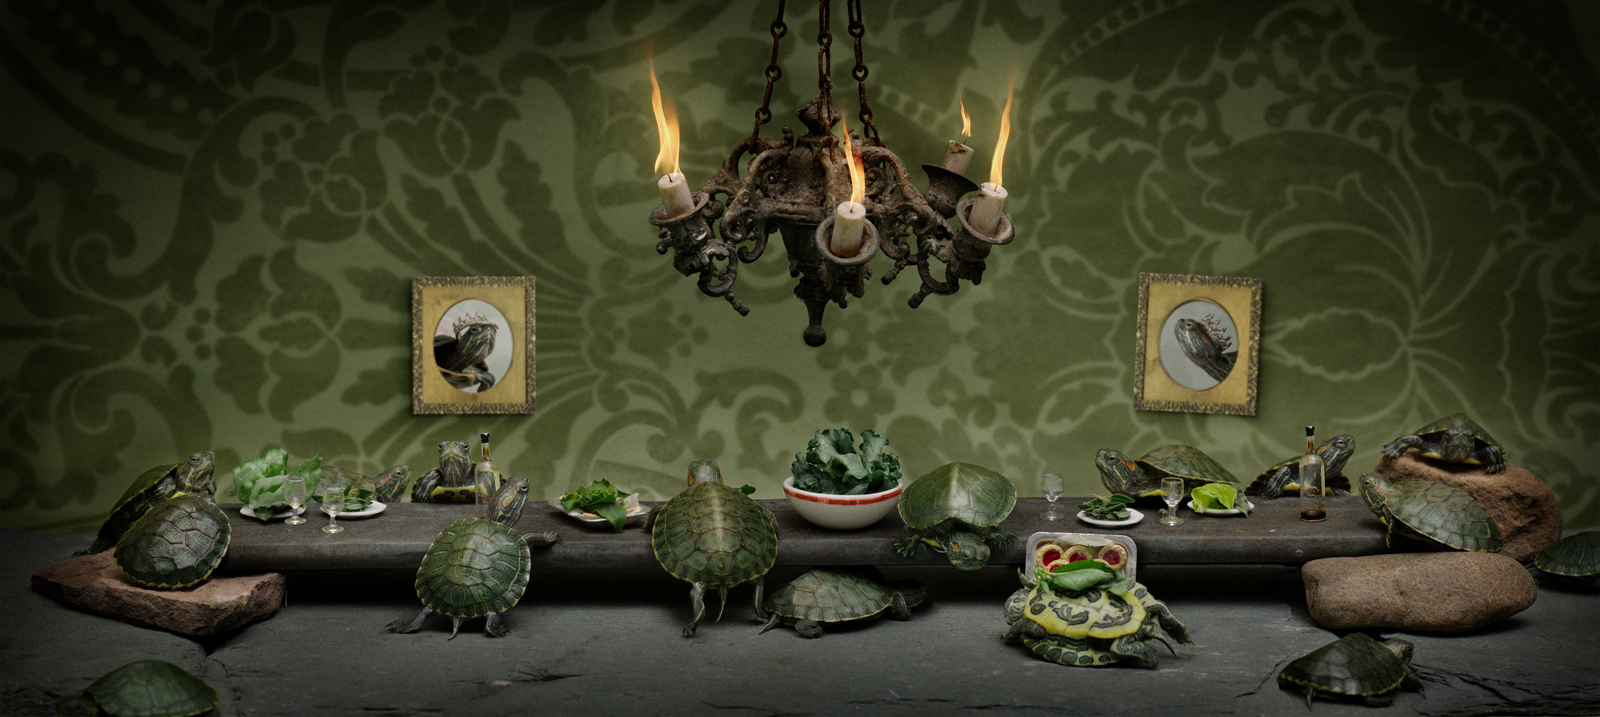 """The Red Eared Slider Turtle Feast  United States, 2013  10""""x22.5"""" 